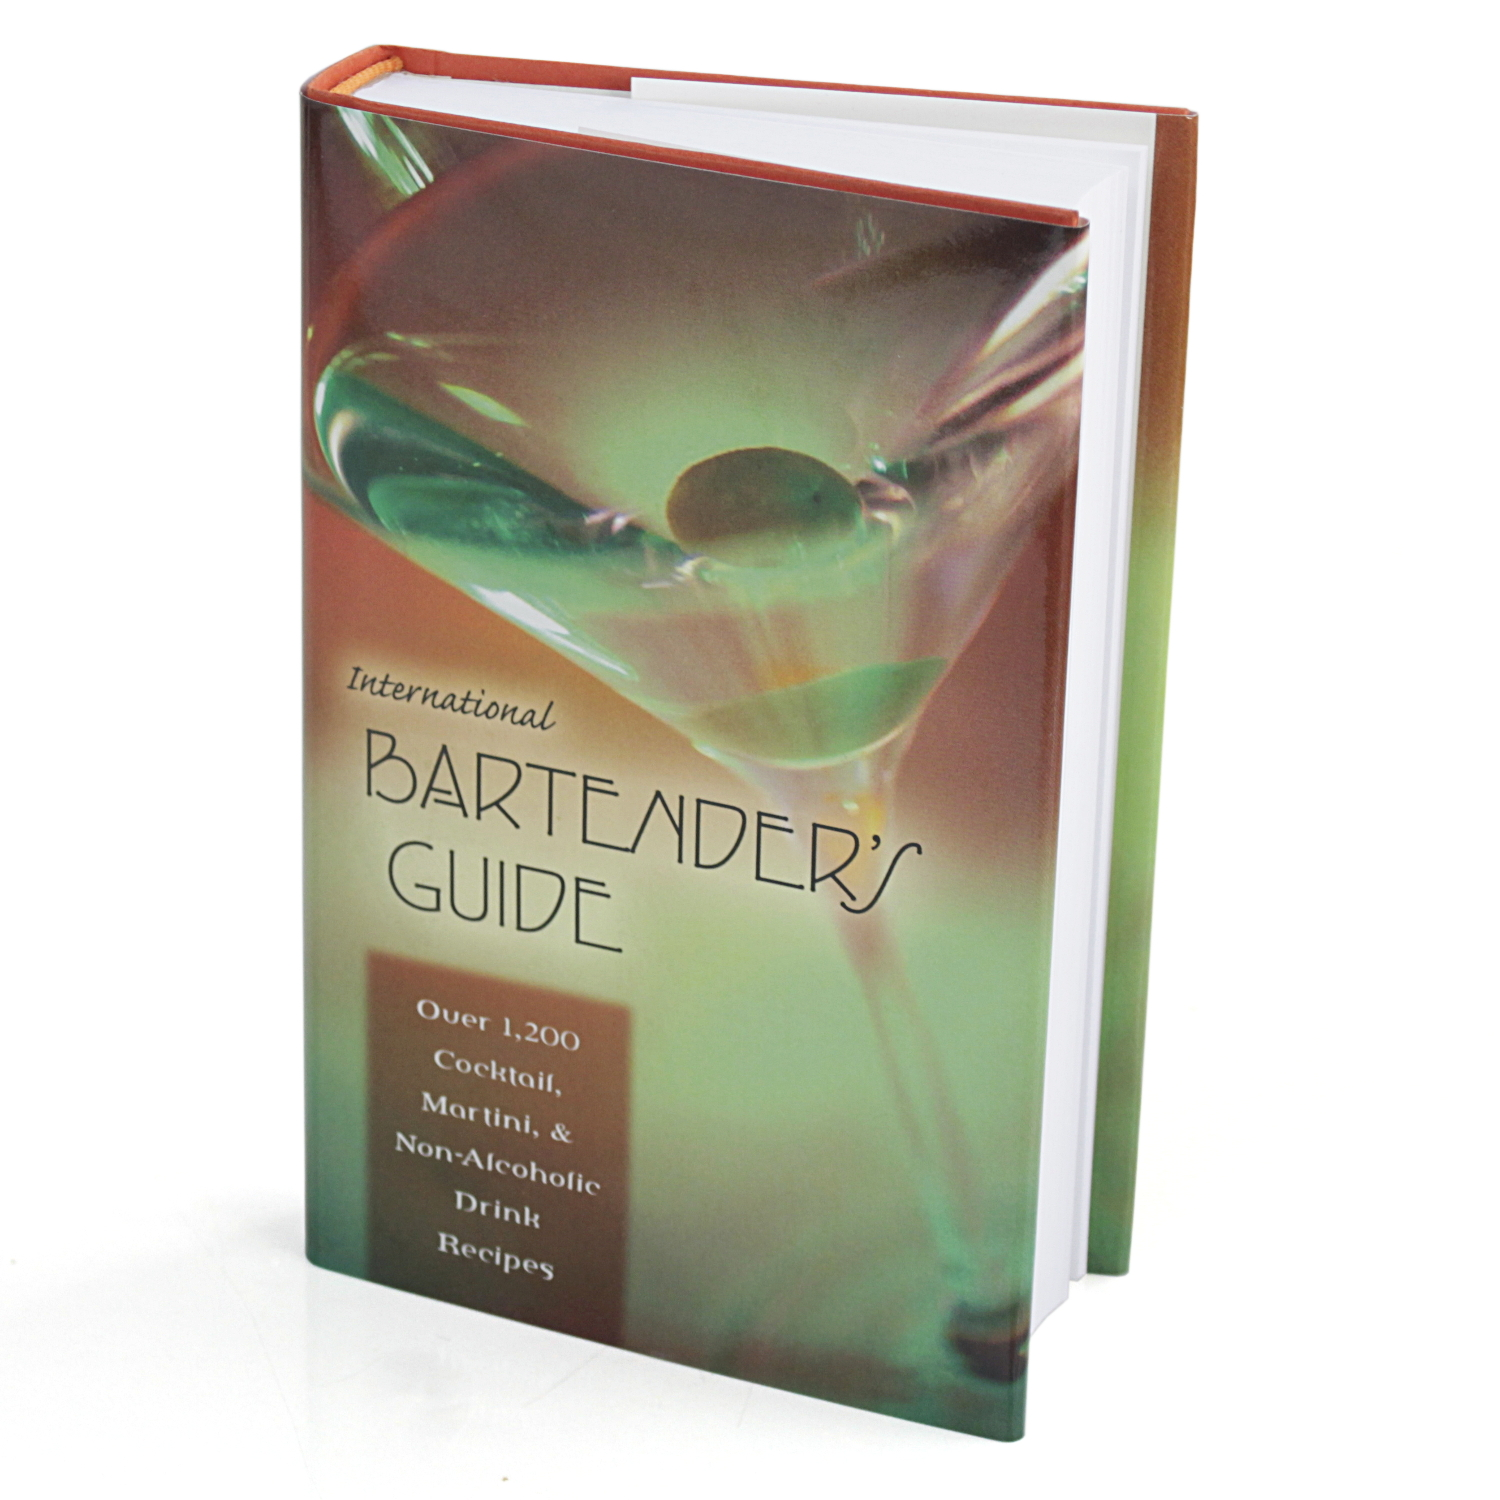 International Bartender's Guide Book with 1,200 Recipes